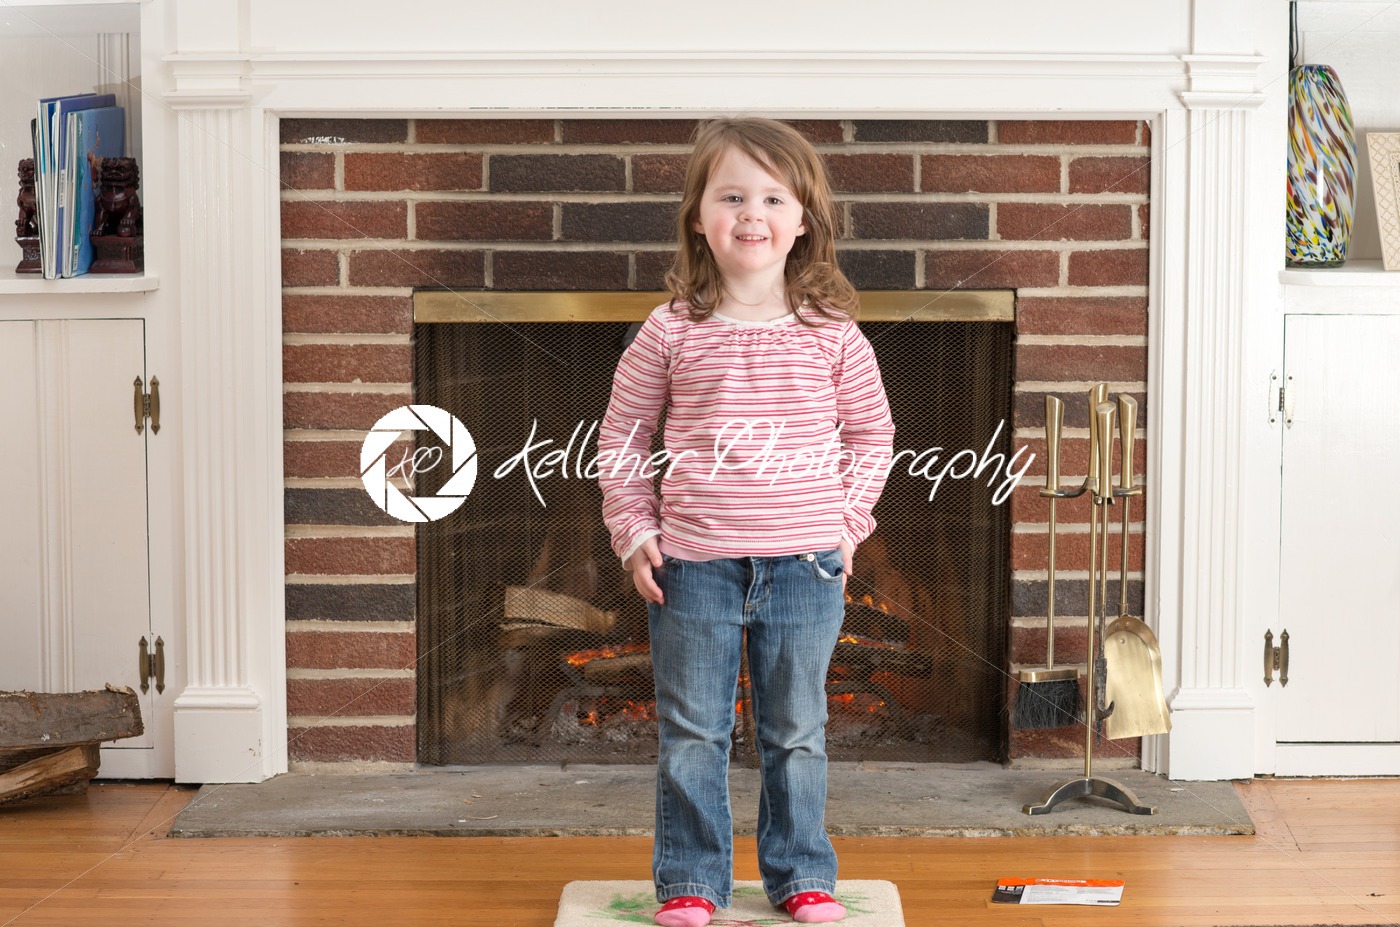 Portrait of a young smiling girl in front of a fireplace dressed for valentine's day - Kelleher Photography Store